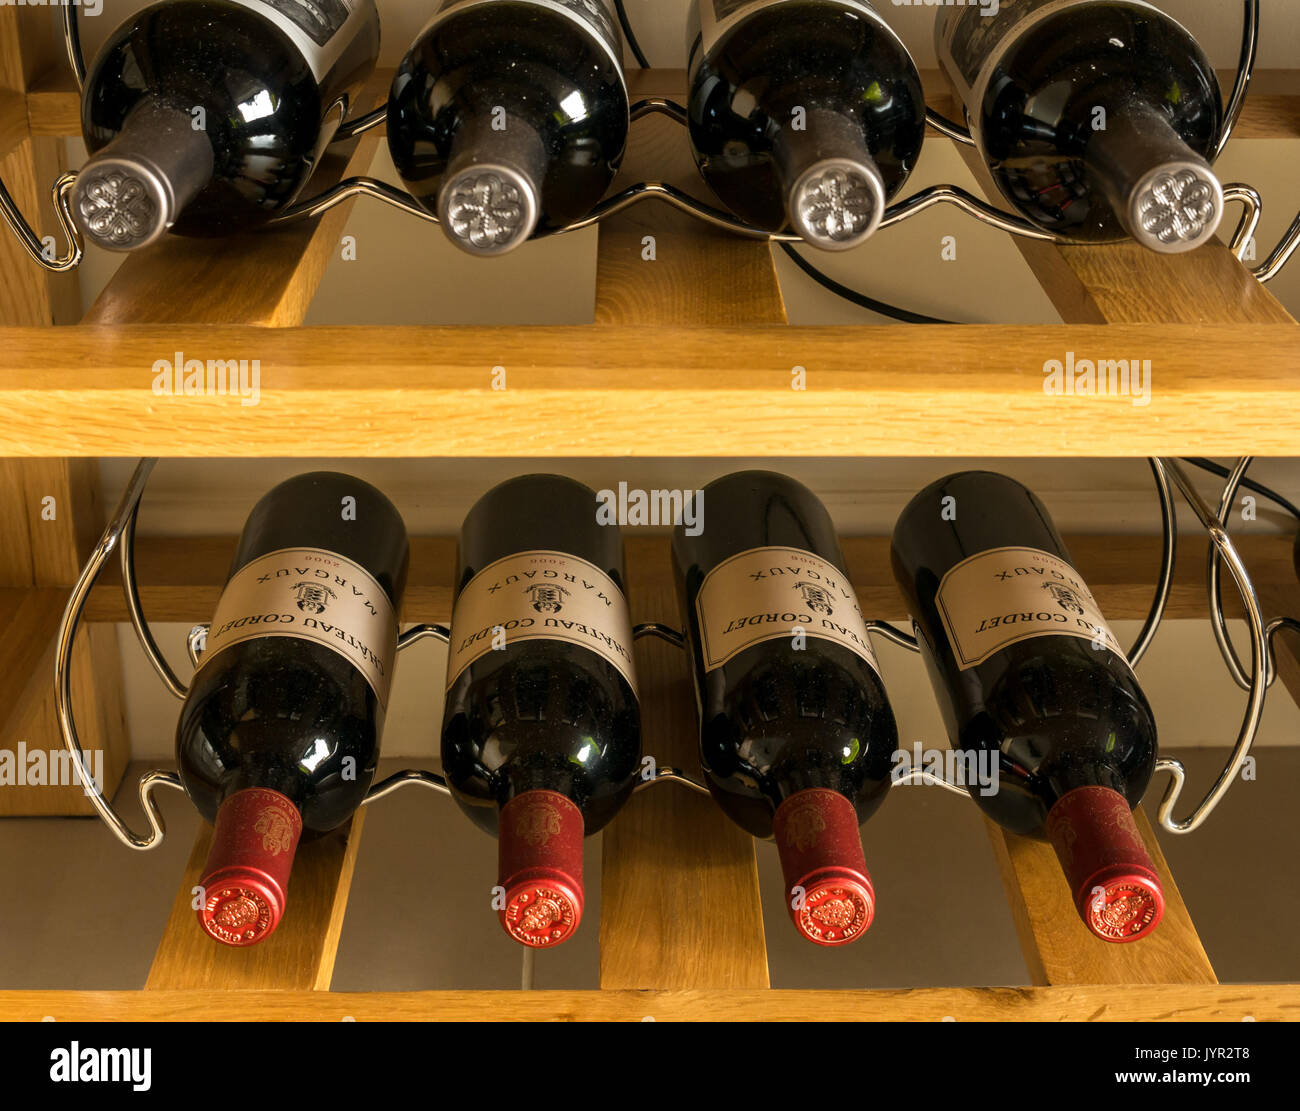 red-wine-bottles-from-the-bordeaux-regio